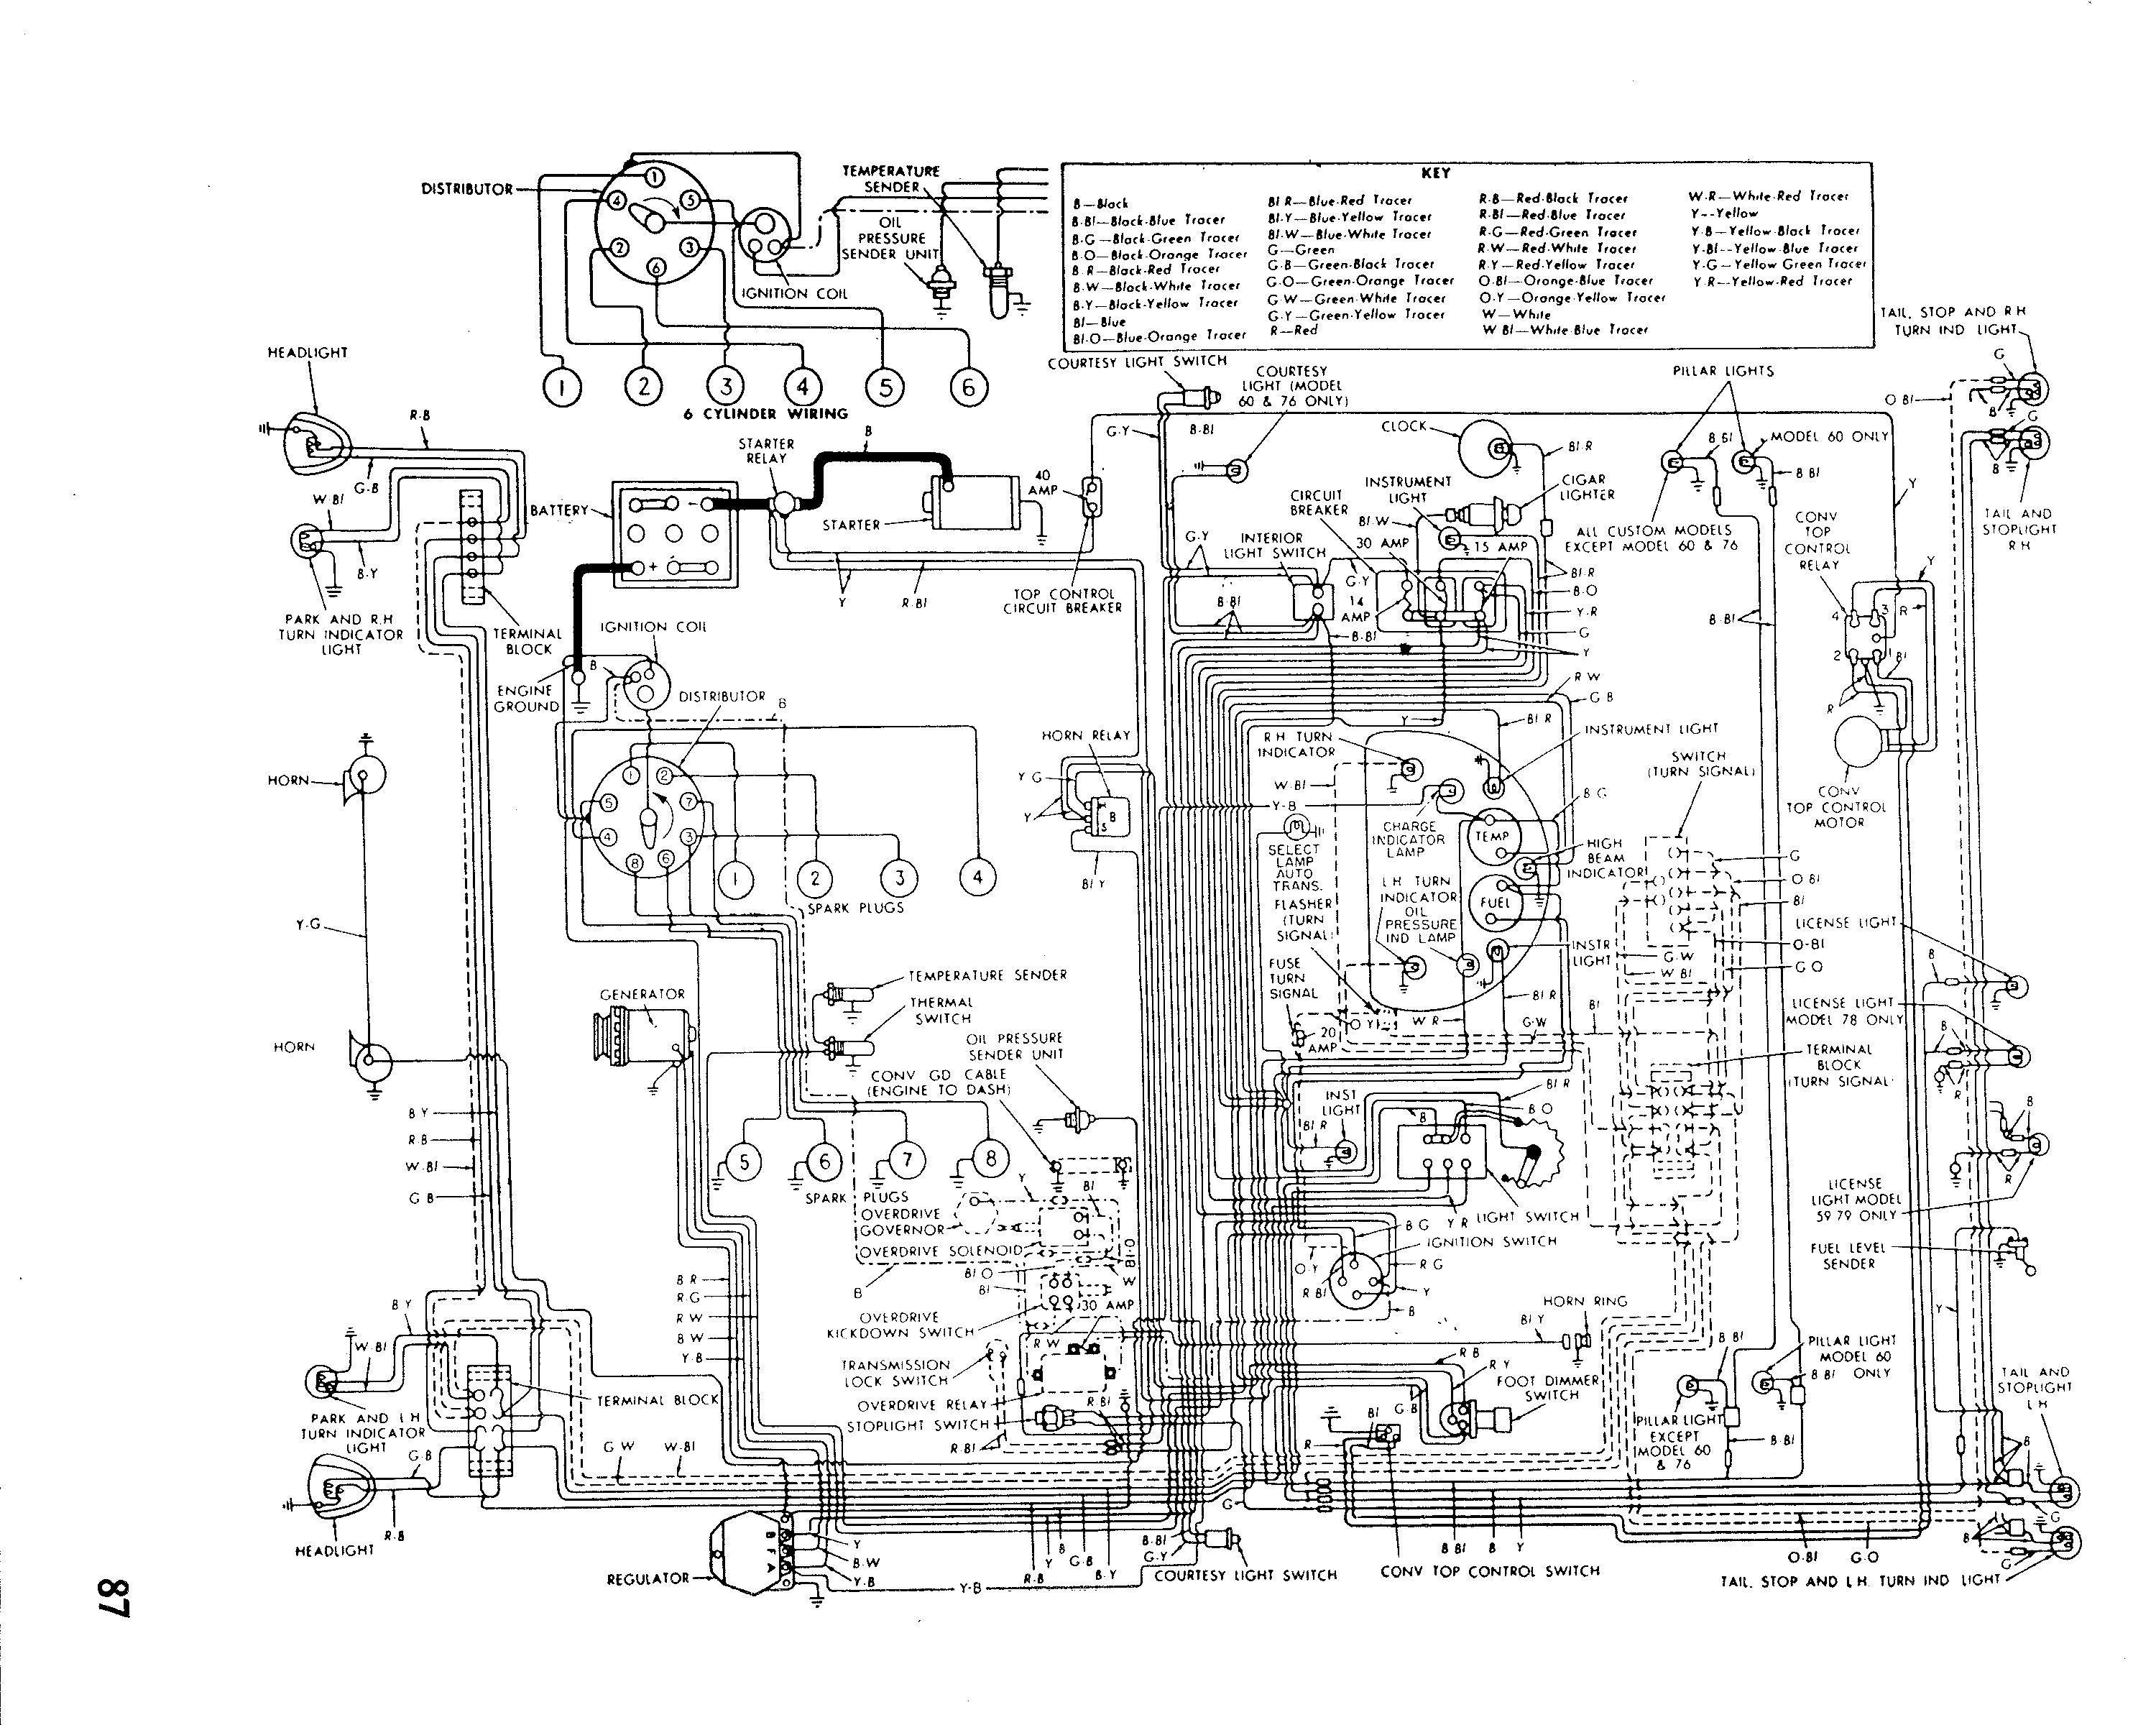 Click image for larger version  Name:54 Ford wiring.jpg Views:779 Size:1.05 MB ID:233425